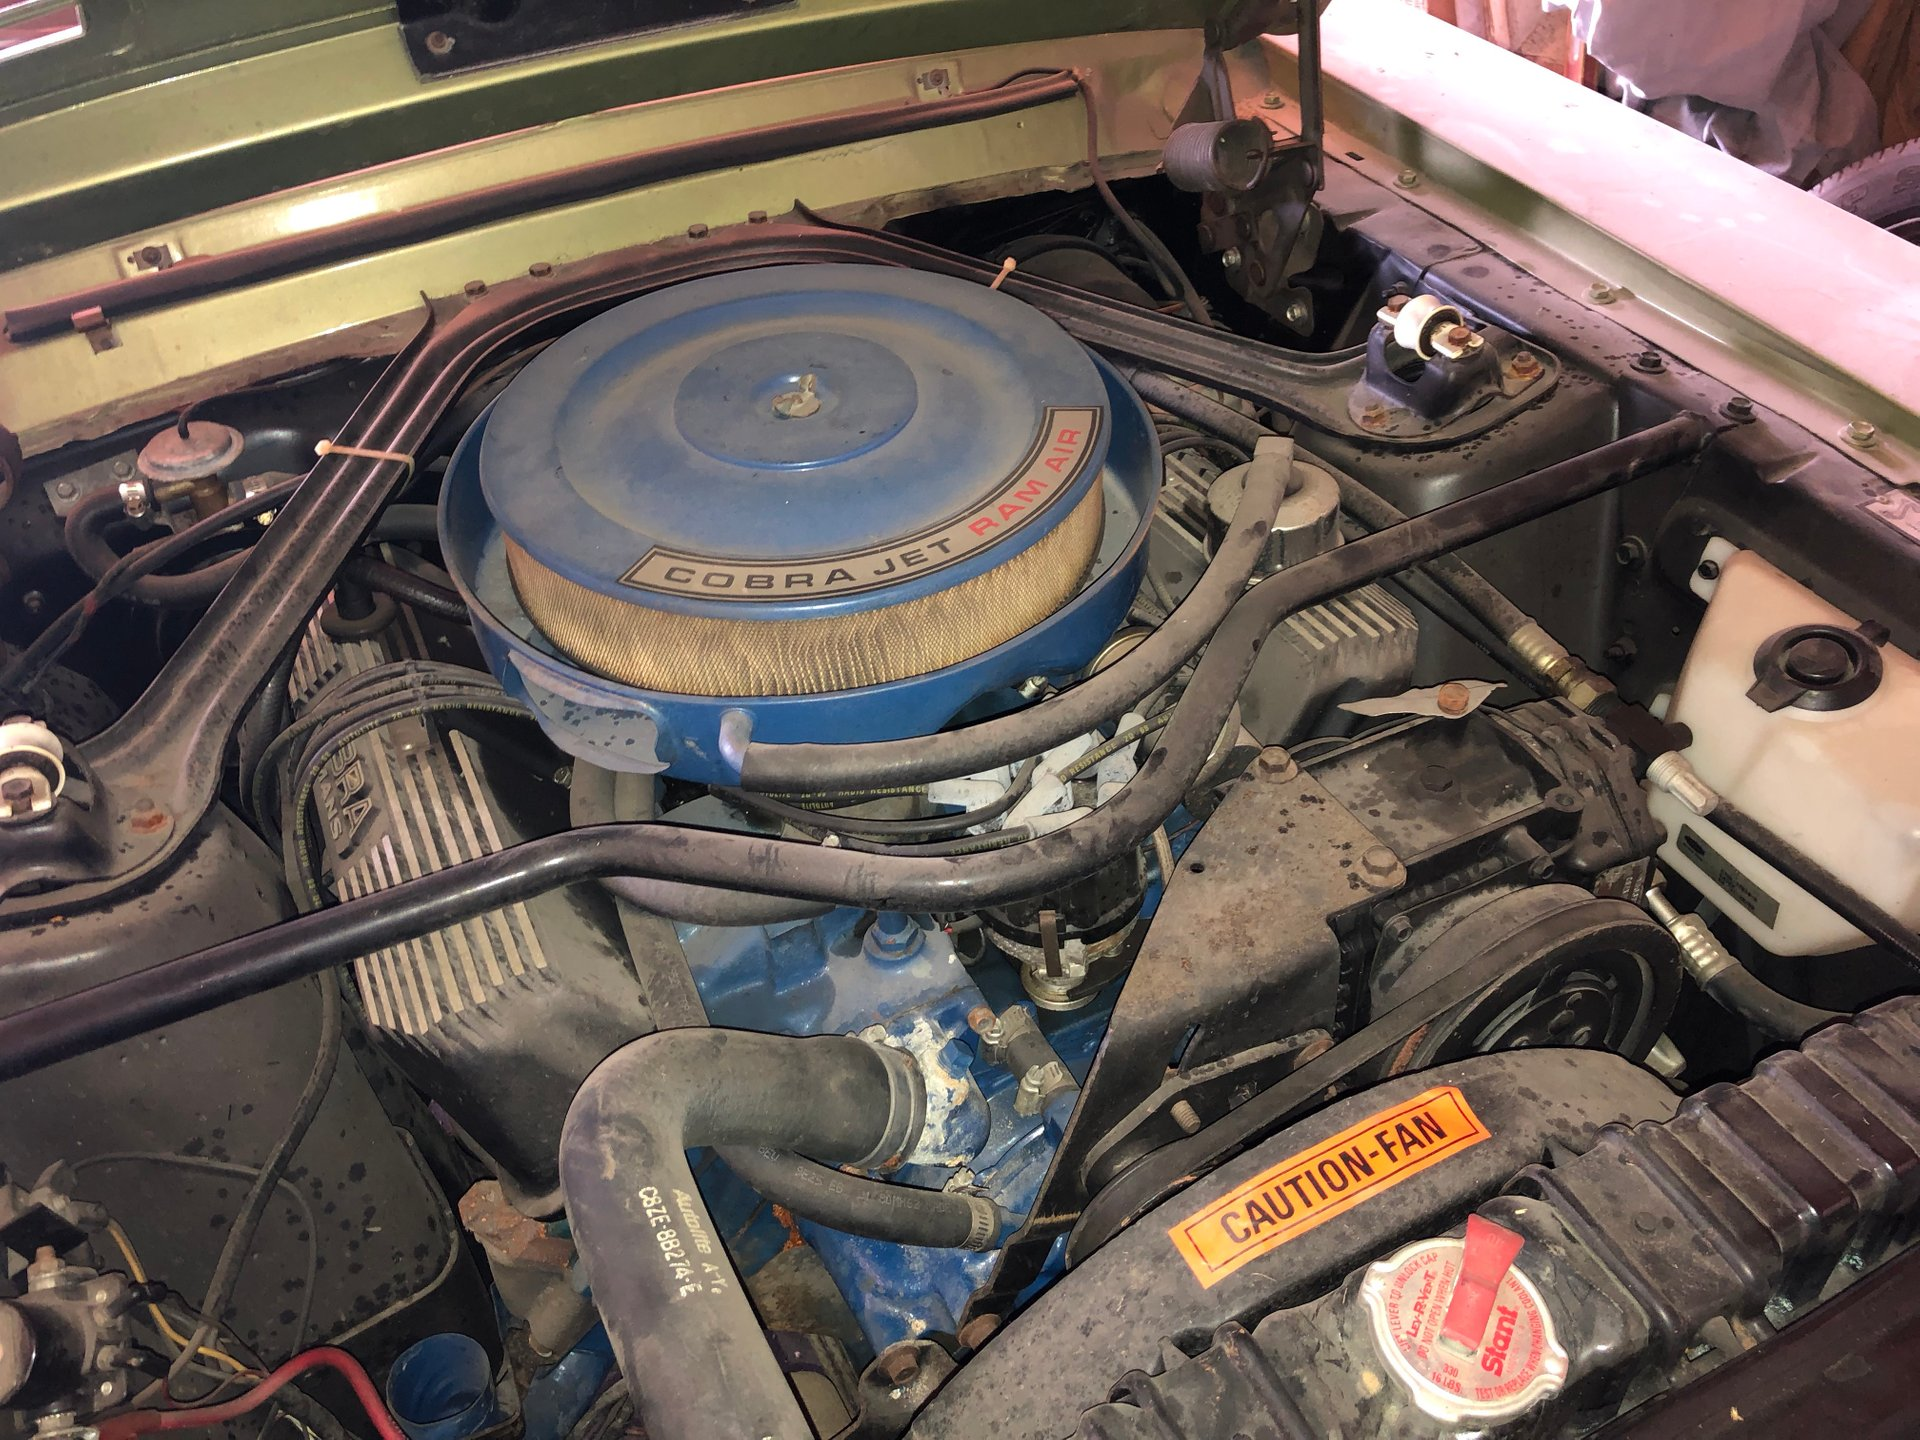 1968 Shelby GT500KR dirty engine